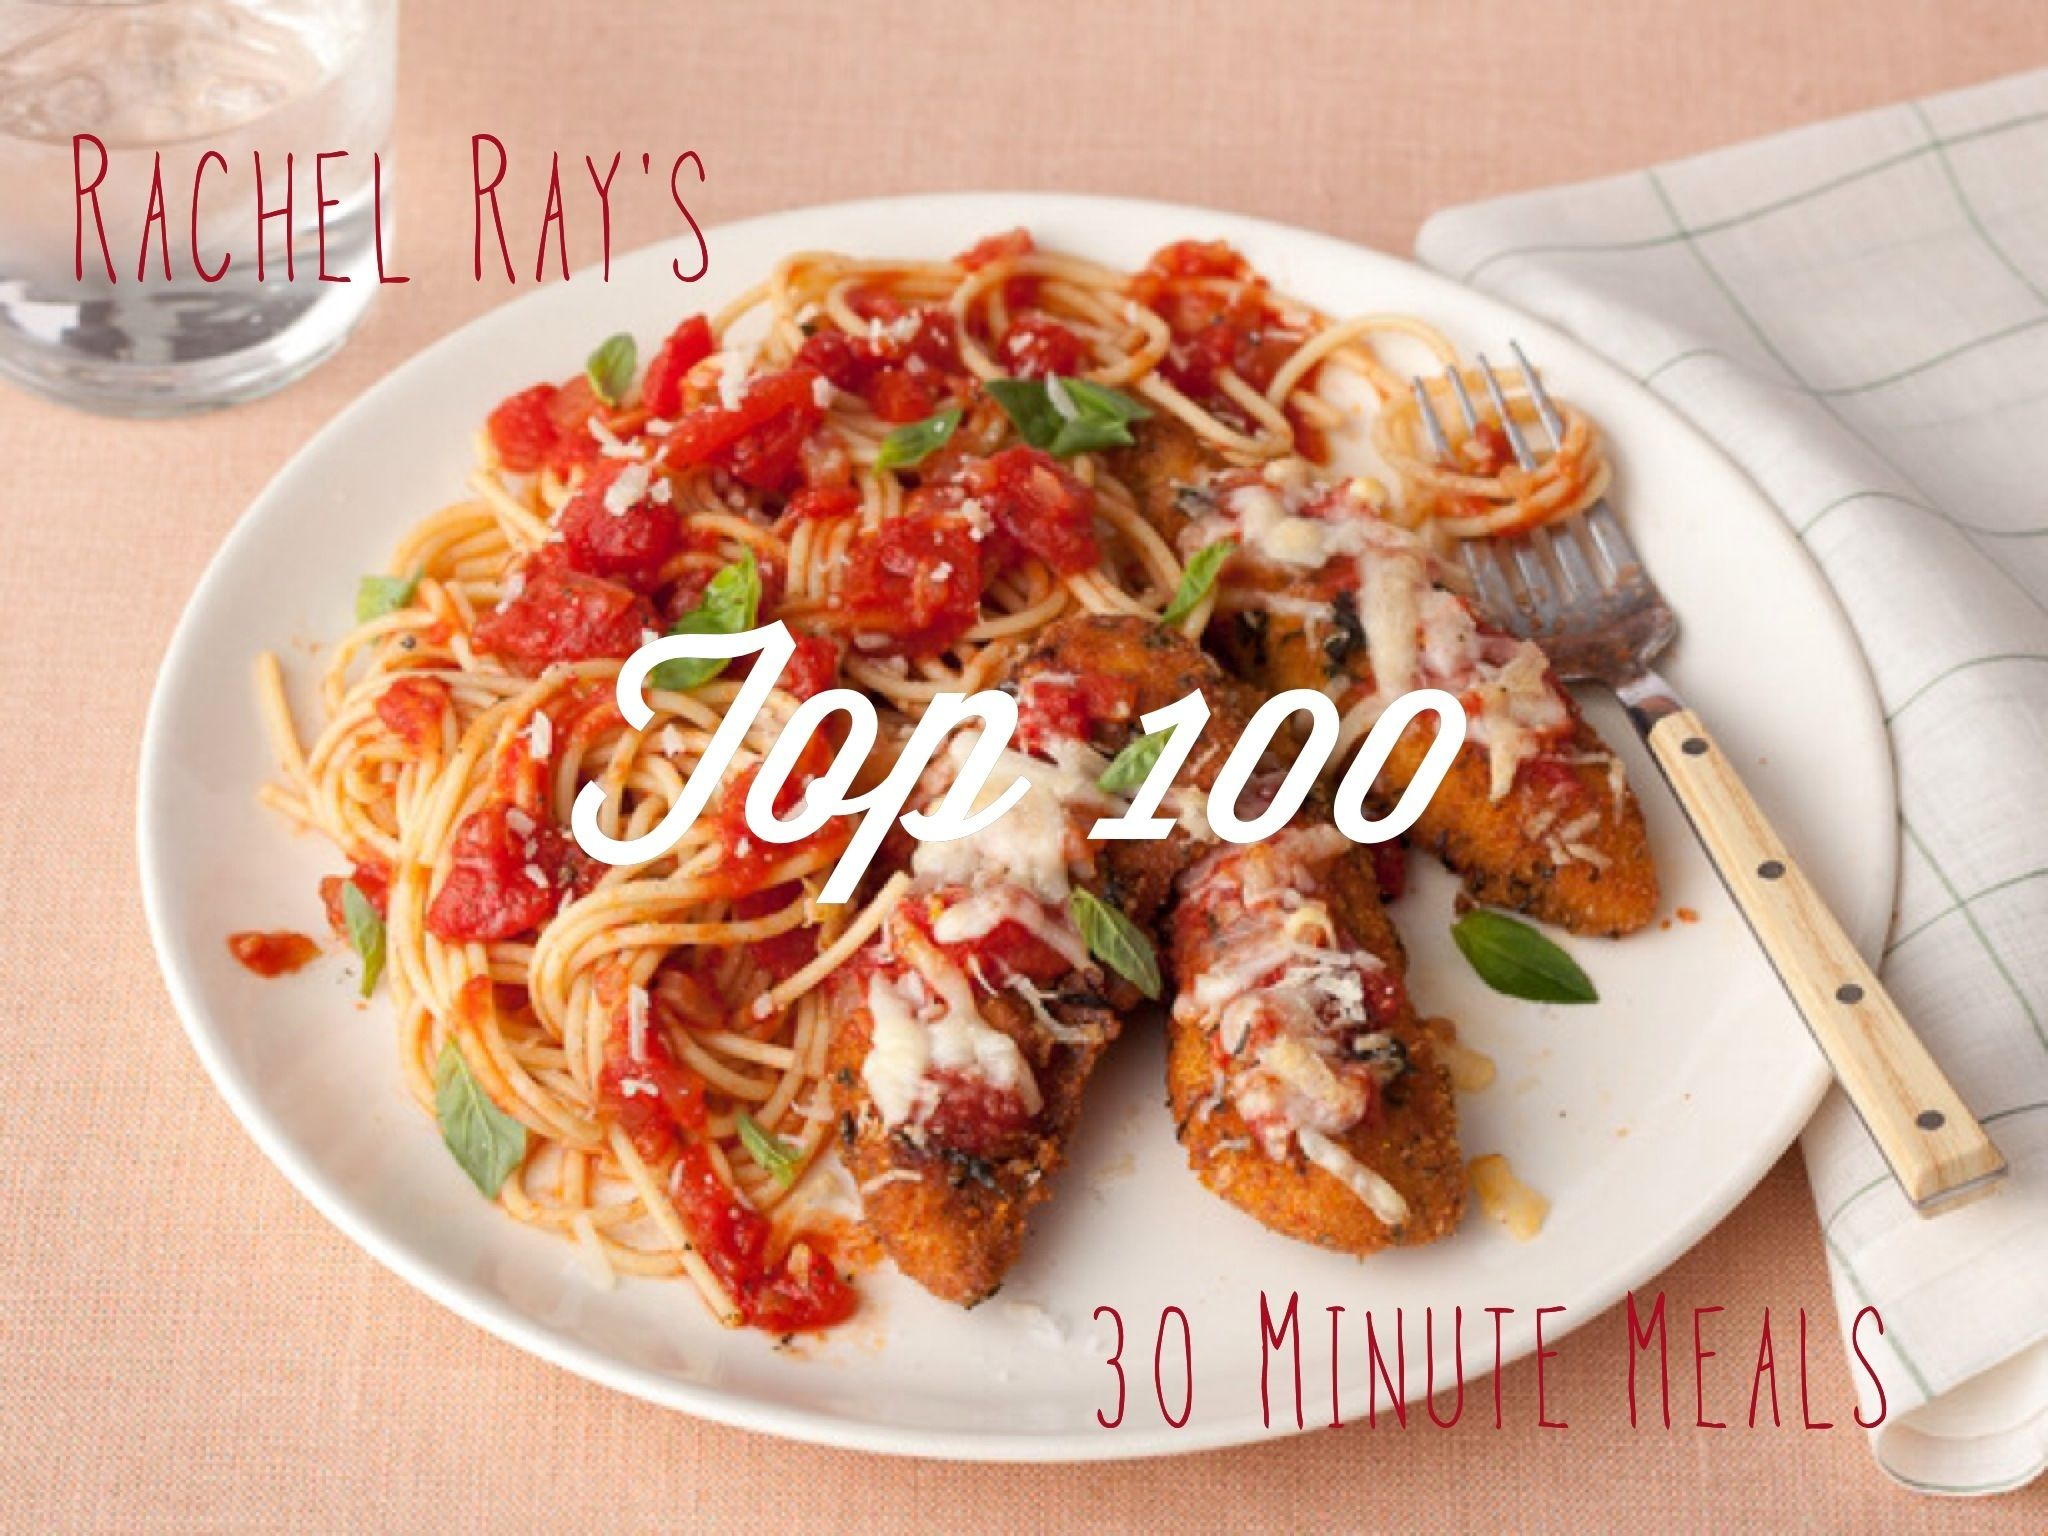 Speed scratch neapolitan recipe rachel ray recipe recipe and meals rachel rays top 100 thirty minute meals from the food network blog best recipes recipe forumfinder Choice Image